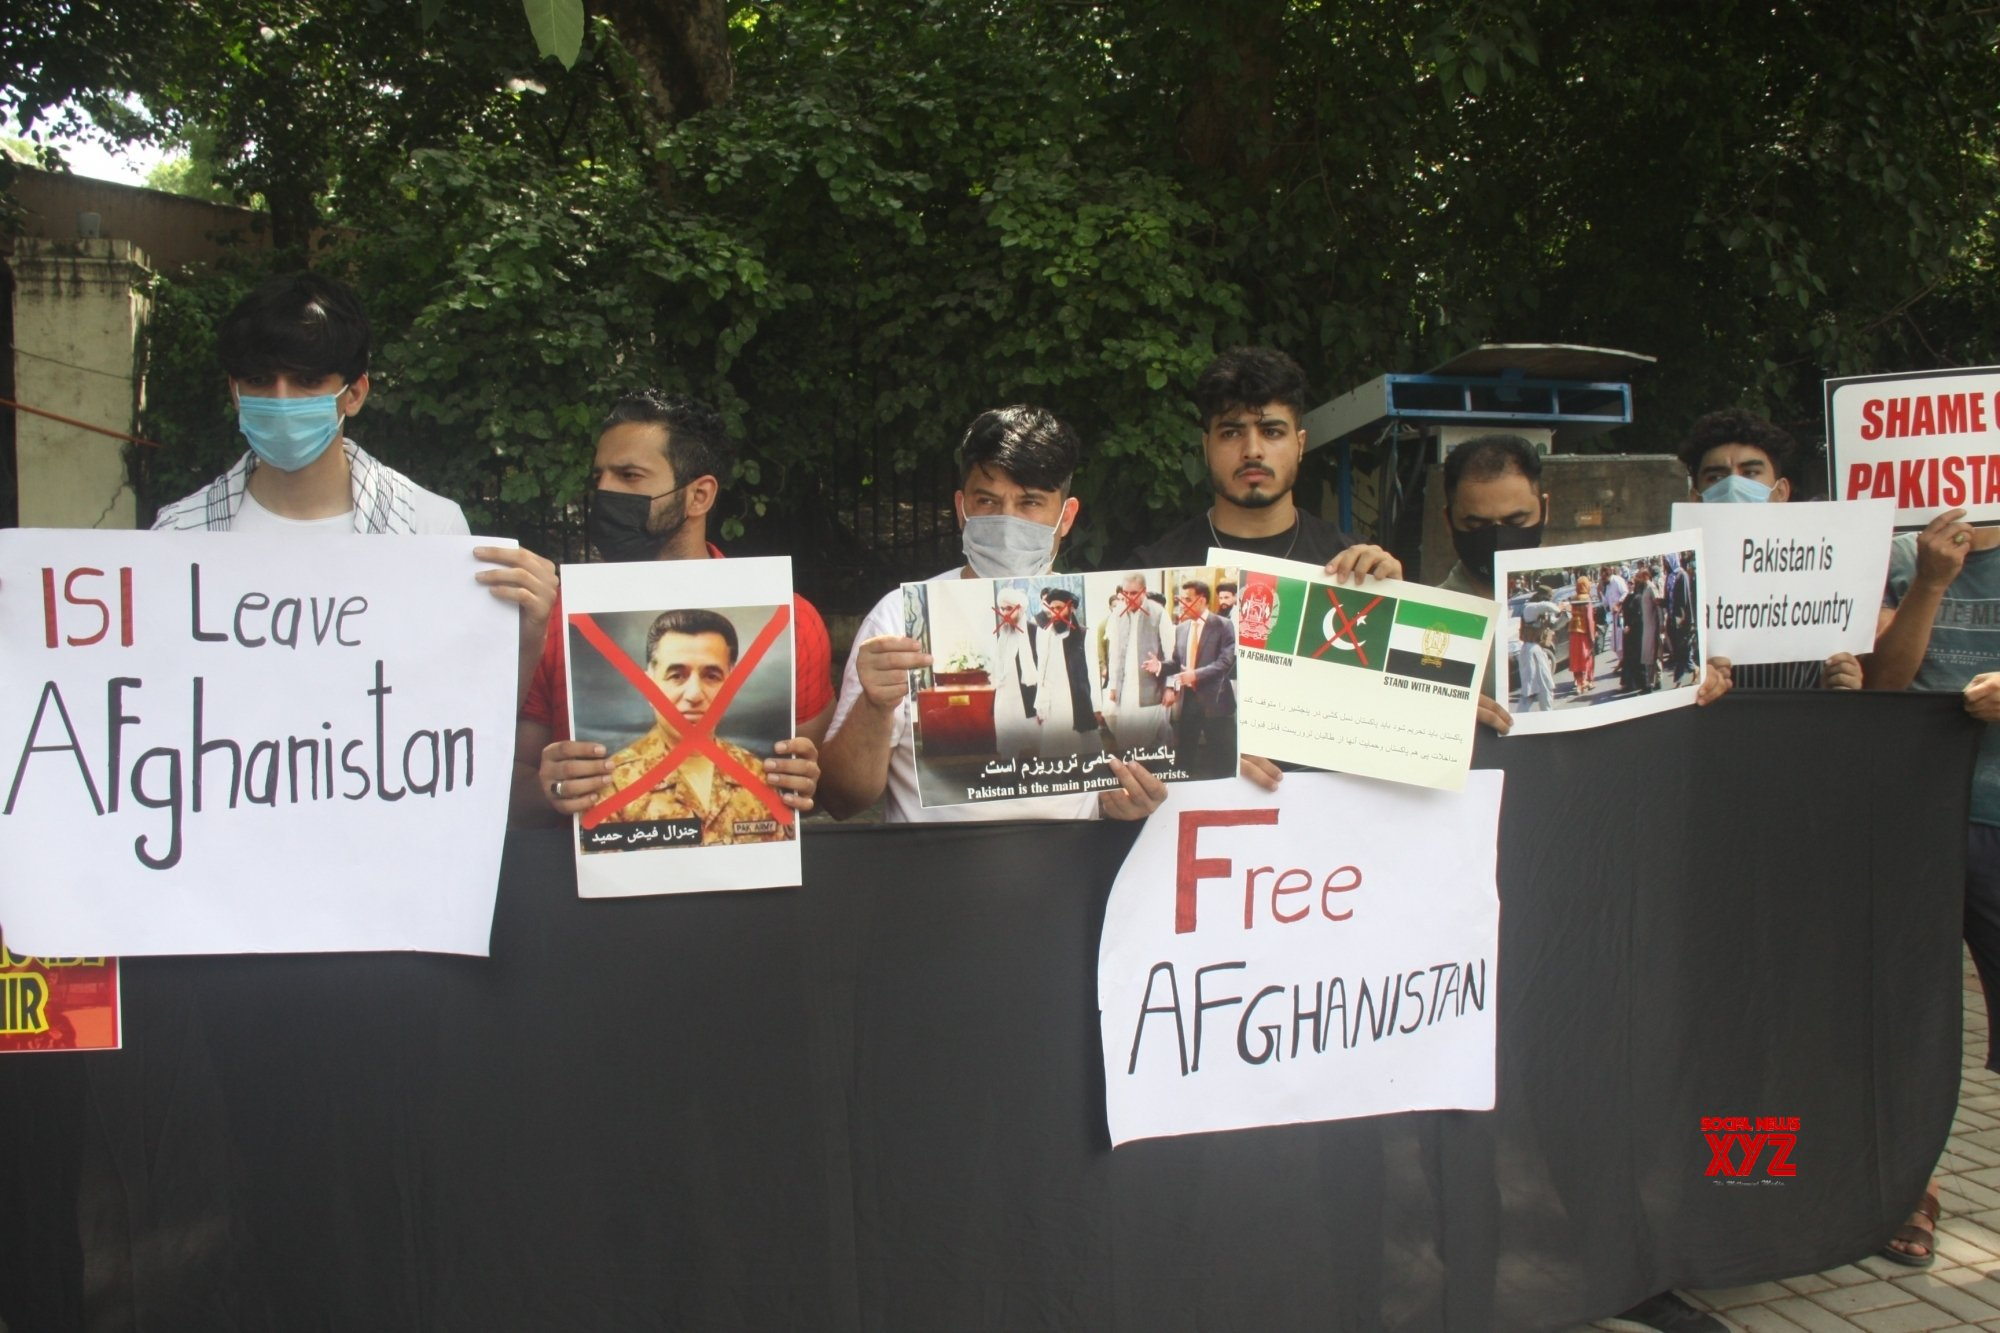 New Delhi: Afghan citizens protest against Pakistan in New Delhi (Batch - 2) #Gallery